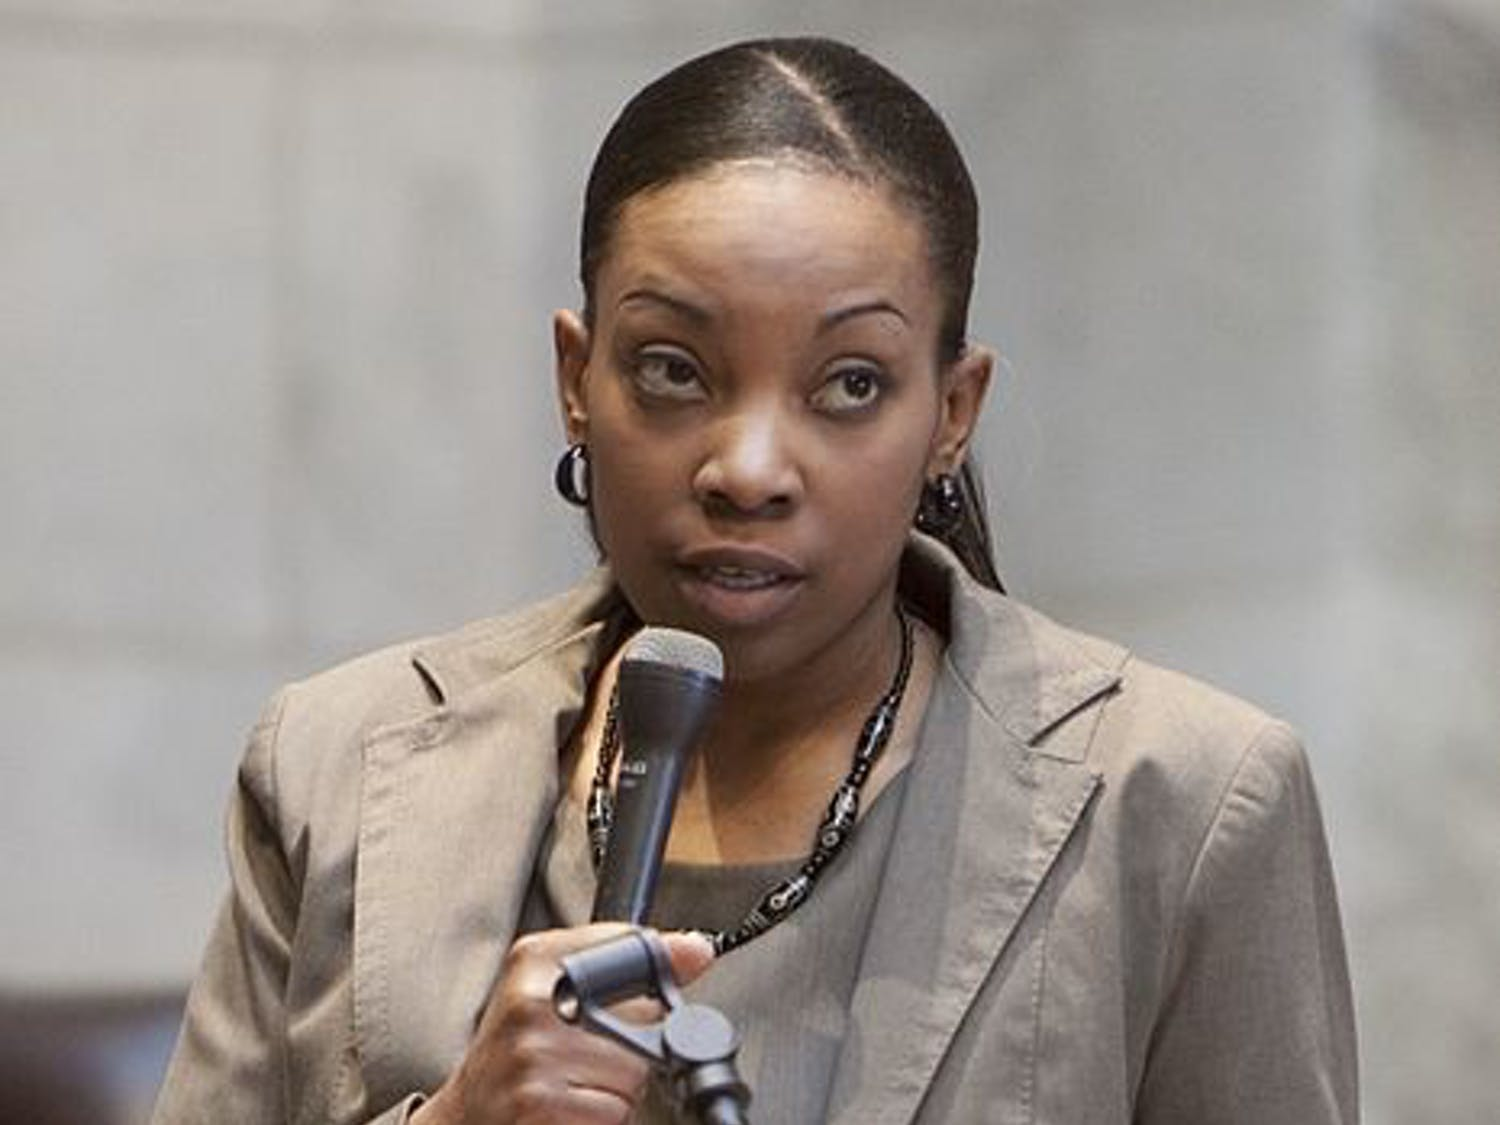 Tamara Grigsby died unexpectedly this week from unspecified health complications.